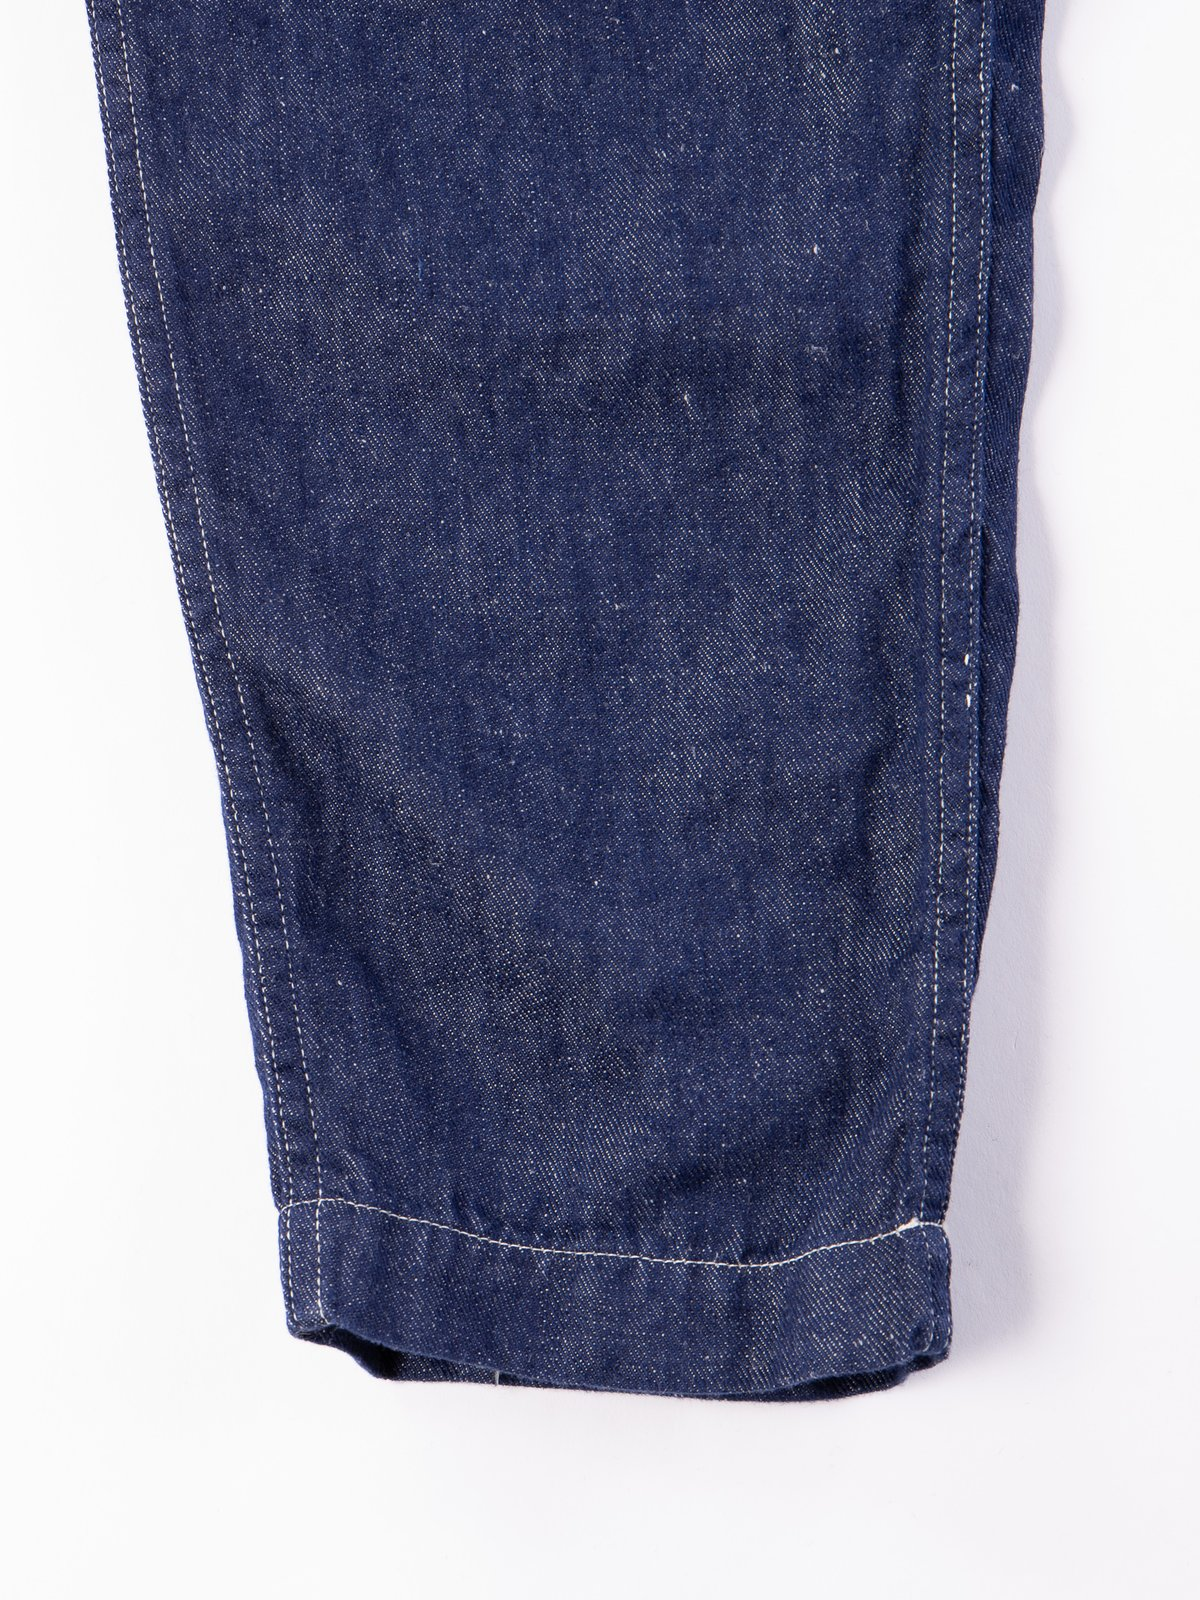 One Wash Denim TBB Mill Pant - Image 5